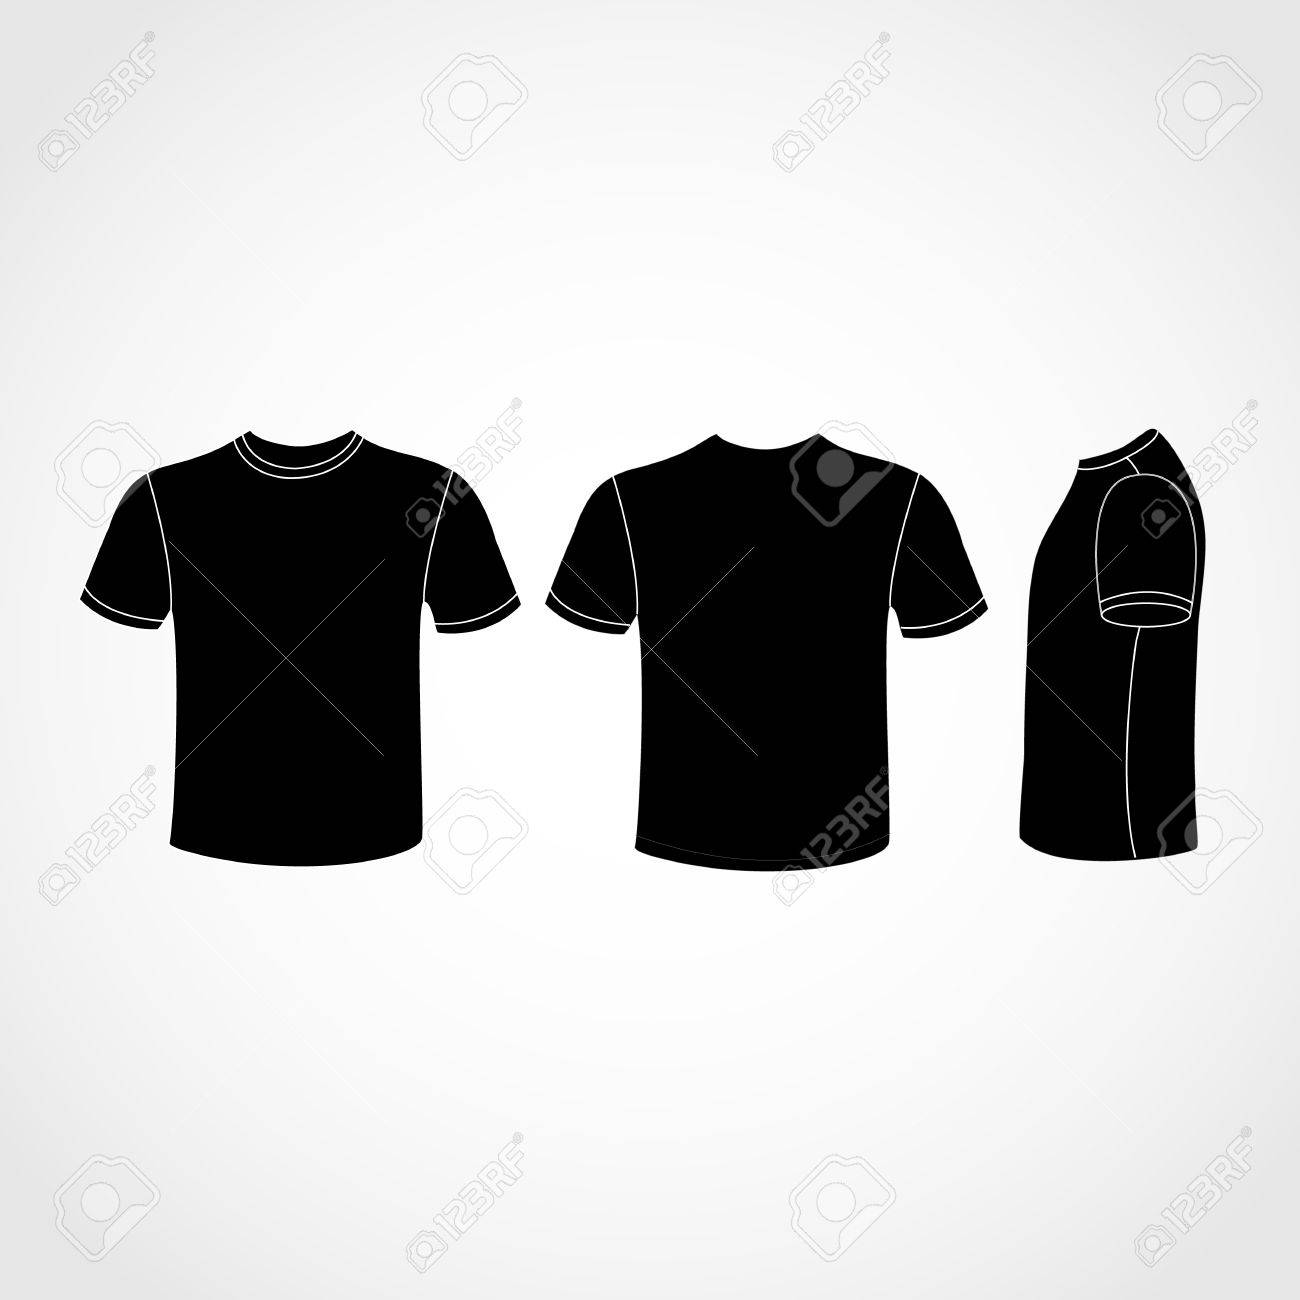 Black t shirt vector free - Black T Shirt Free Vector Black Shirt Icon Great For Any Use Stock Vector 36926390